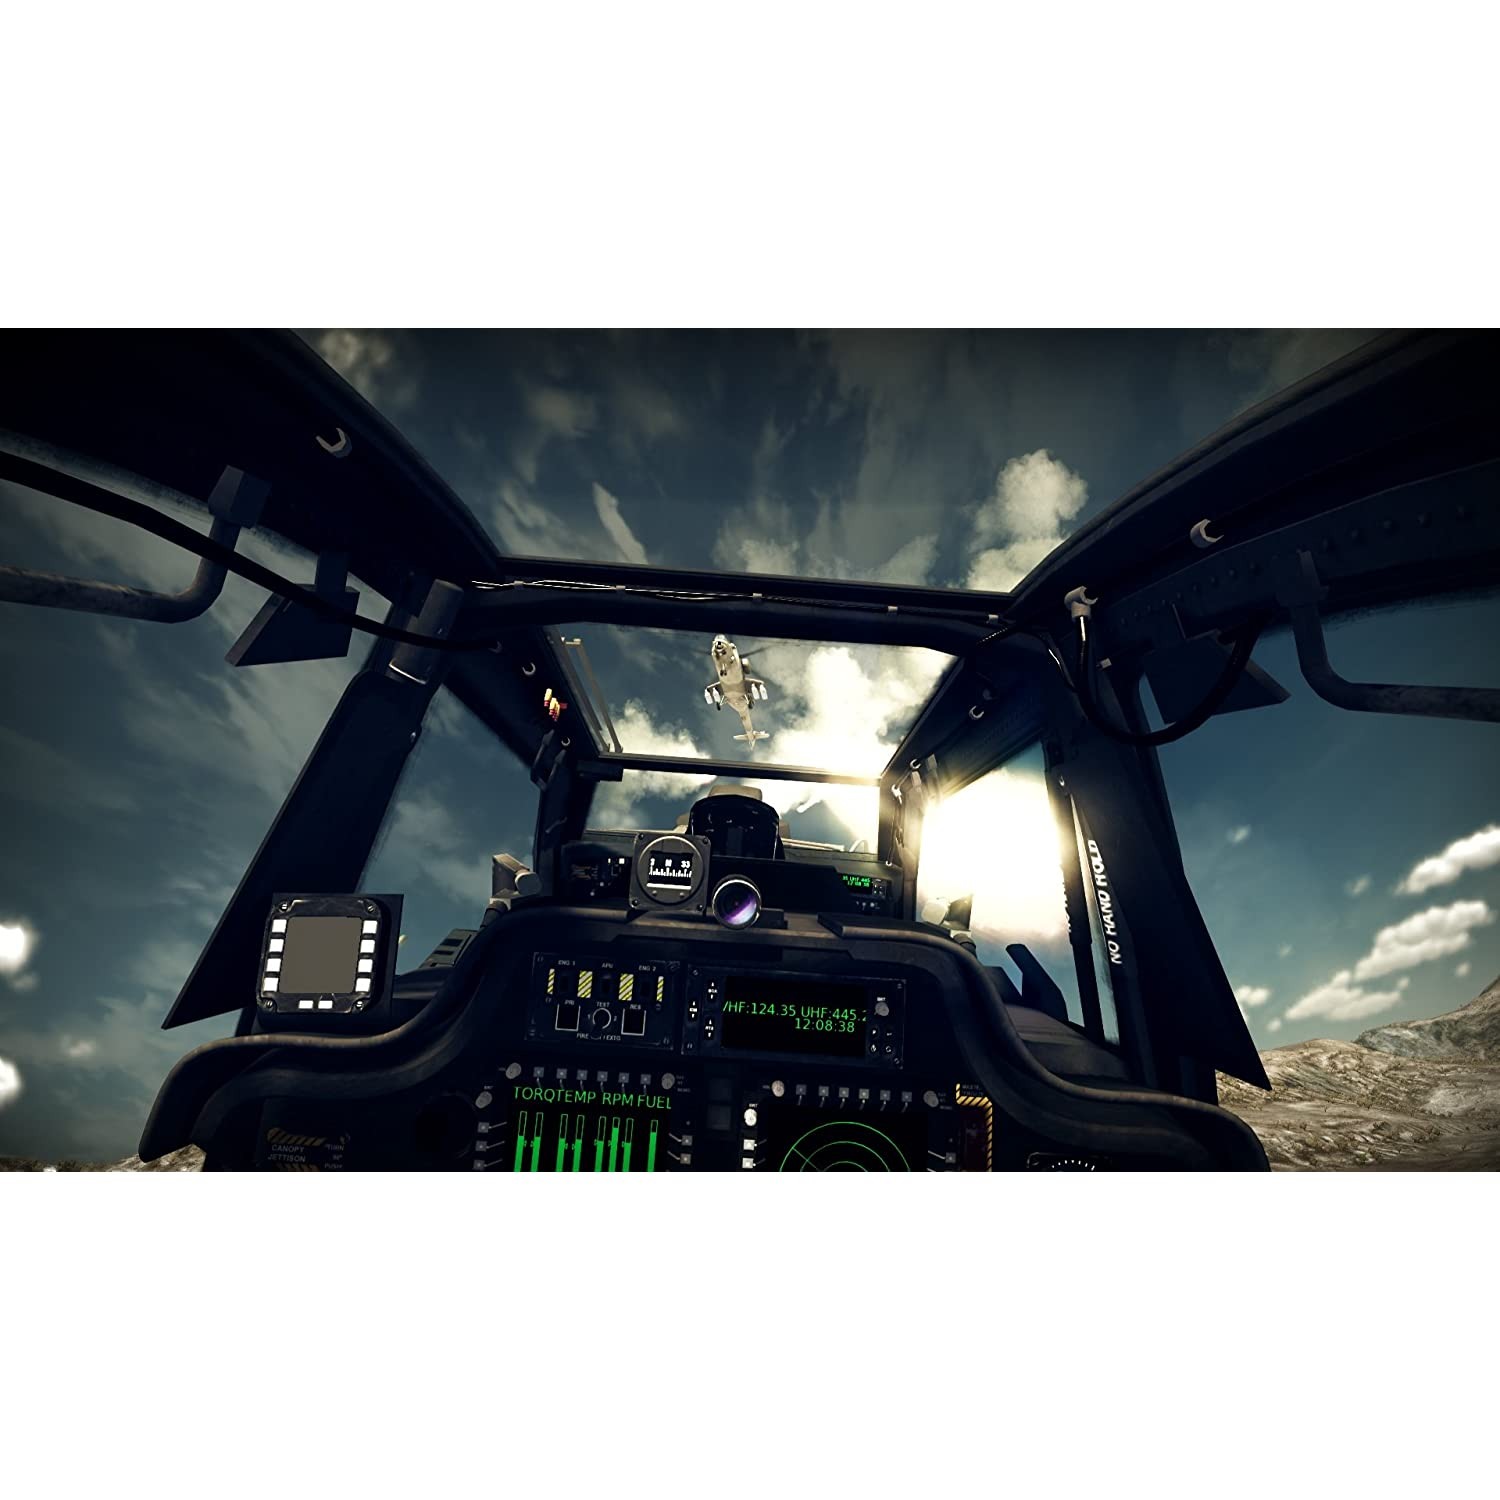 Online Game, Video Game, PlayStation 3, PS3, Xbox 360, Flight Simulator, Air Combat, Helicopter, Flying, Simulation, Action, Apache: Air Assault